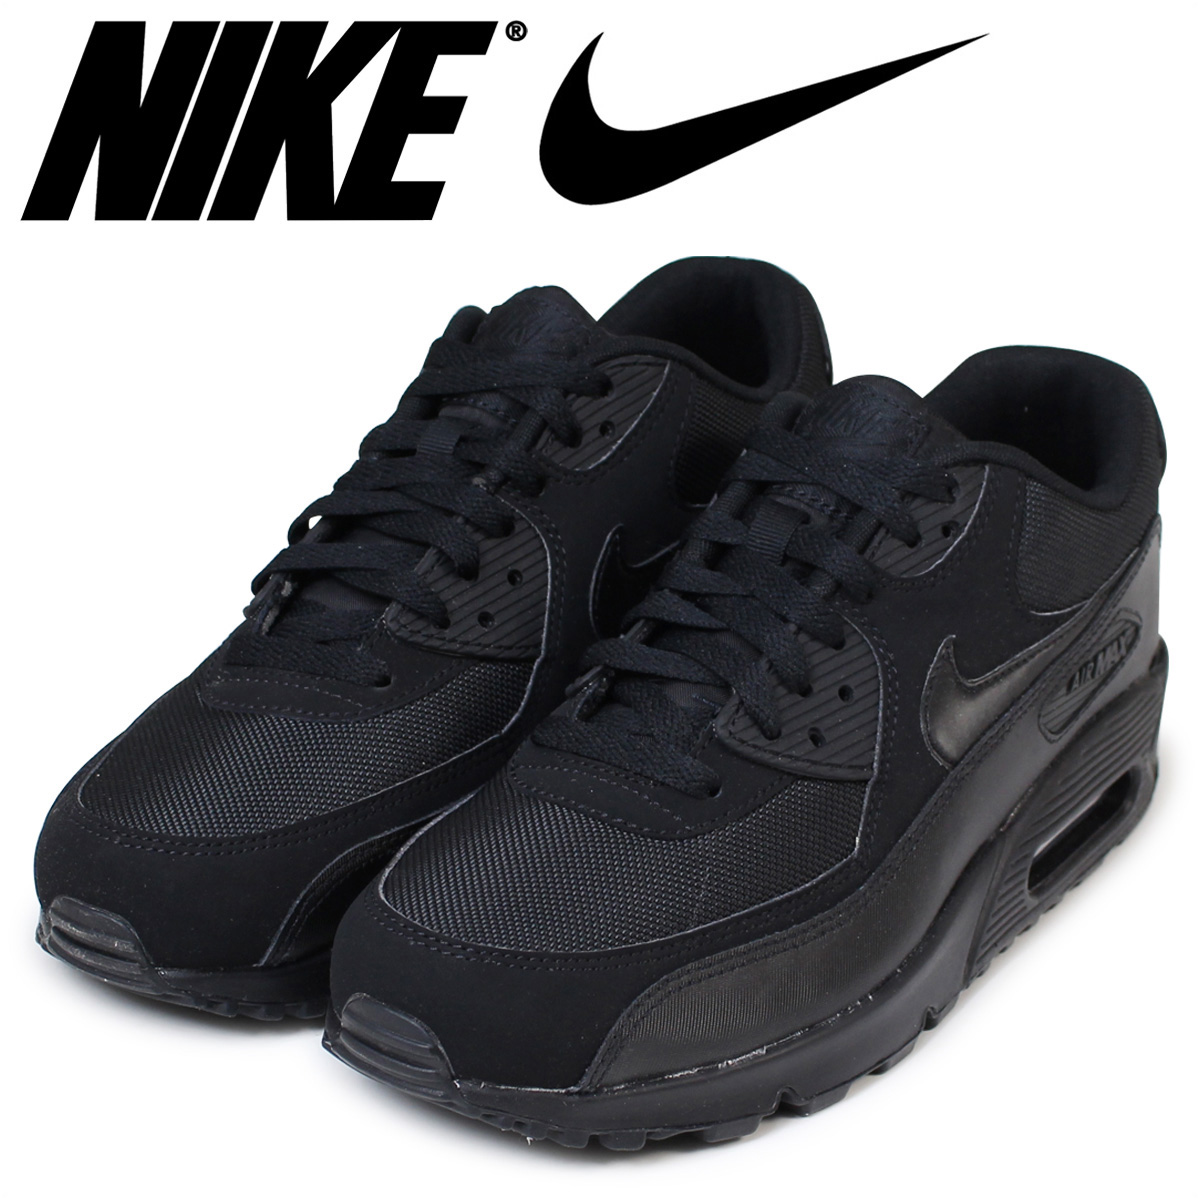 Nike Air Max 90 Essential Low Top Men's Shoes